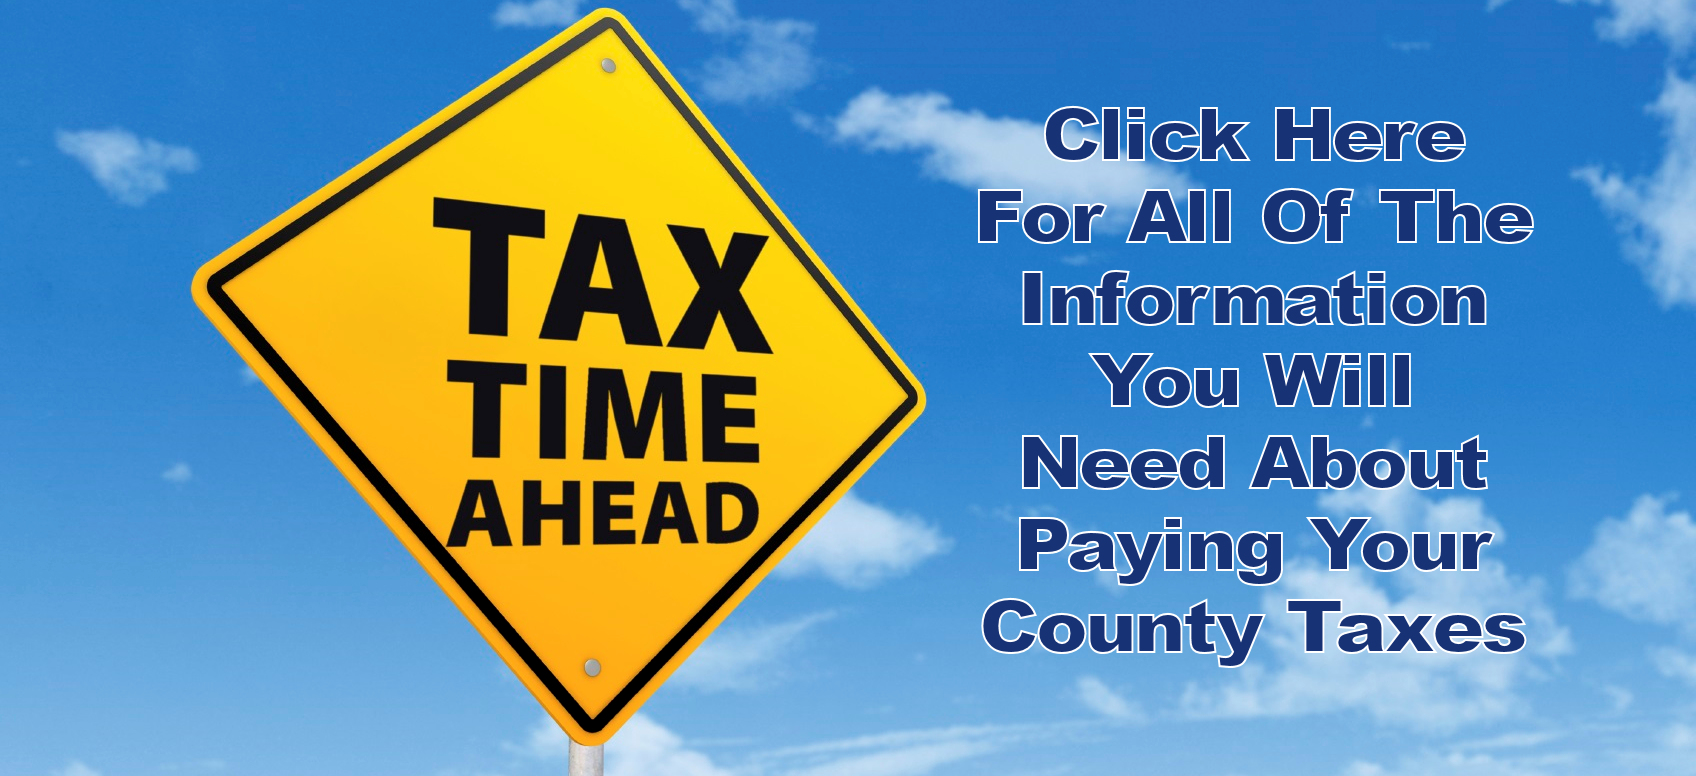 INFORMATION ABOUT UPCOMING TAX COLLECTION AND ADJUSTED HOURS DURING COLLECTION